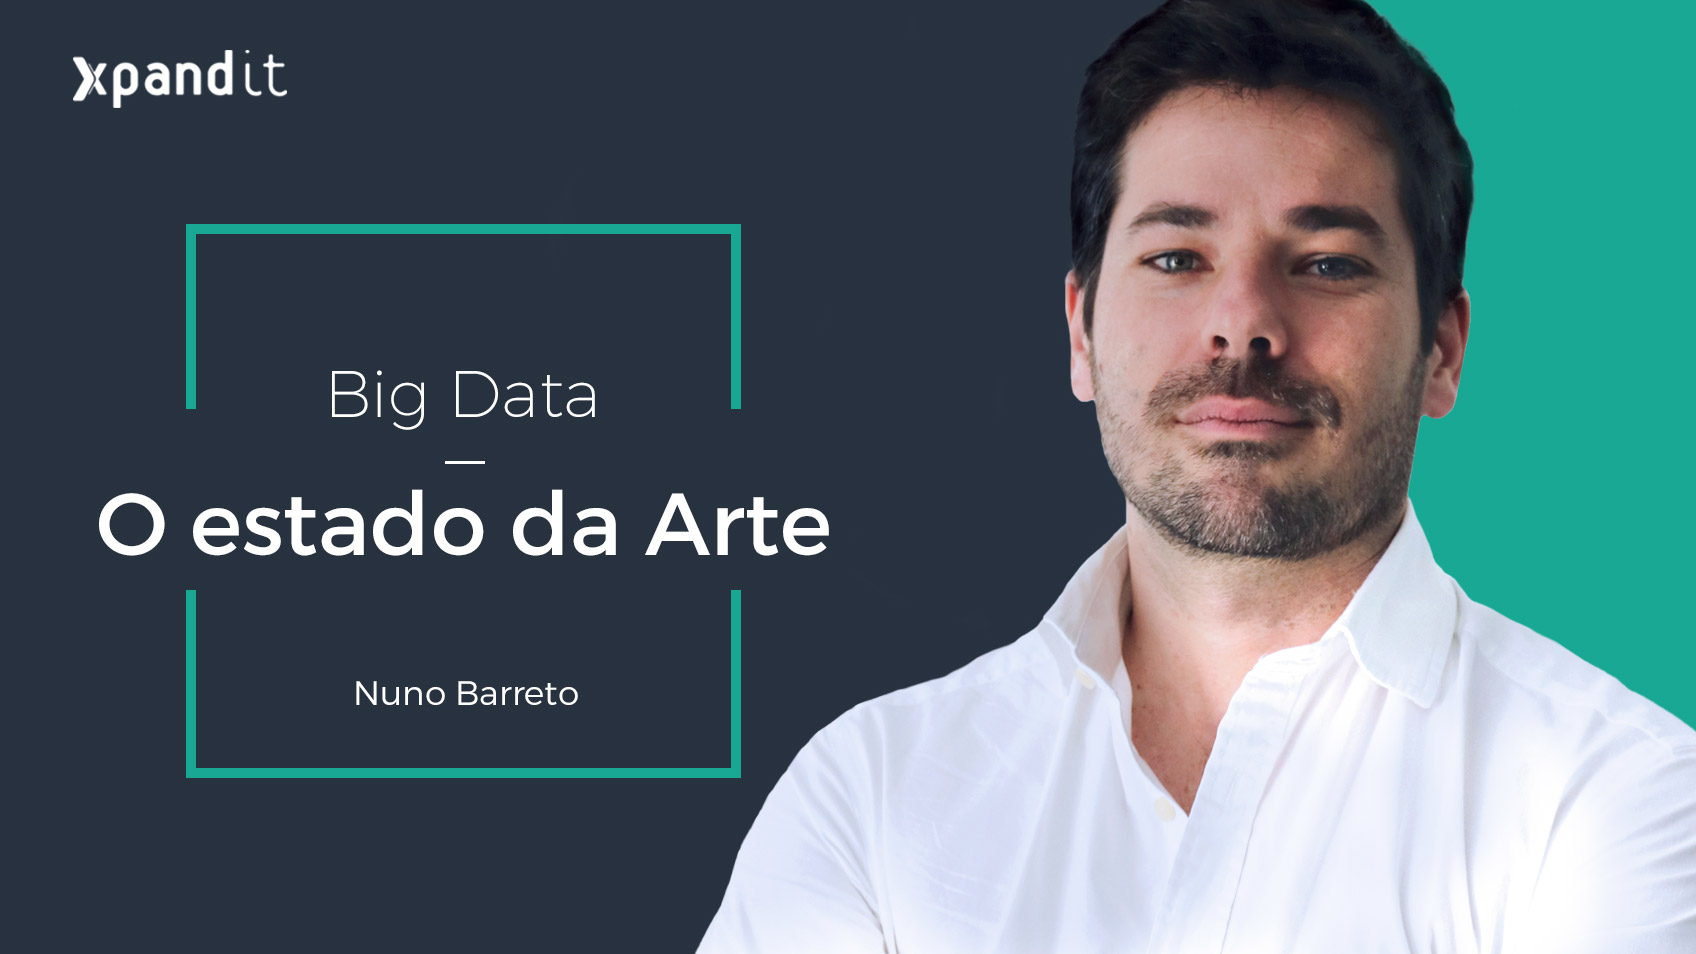 Big Data: O estado da arte